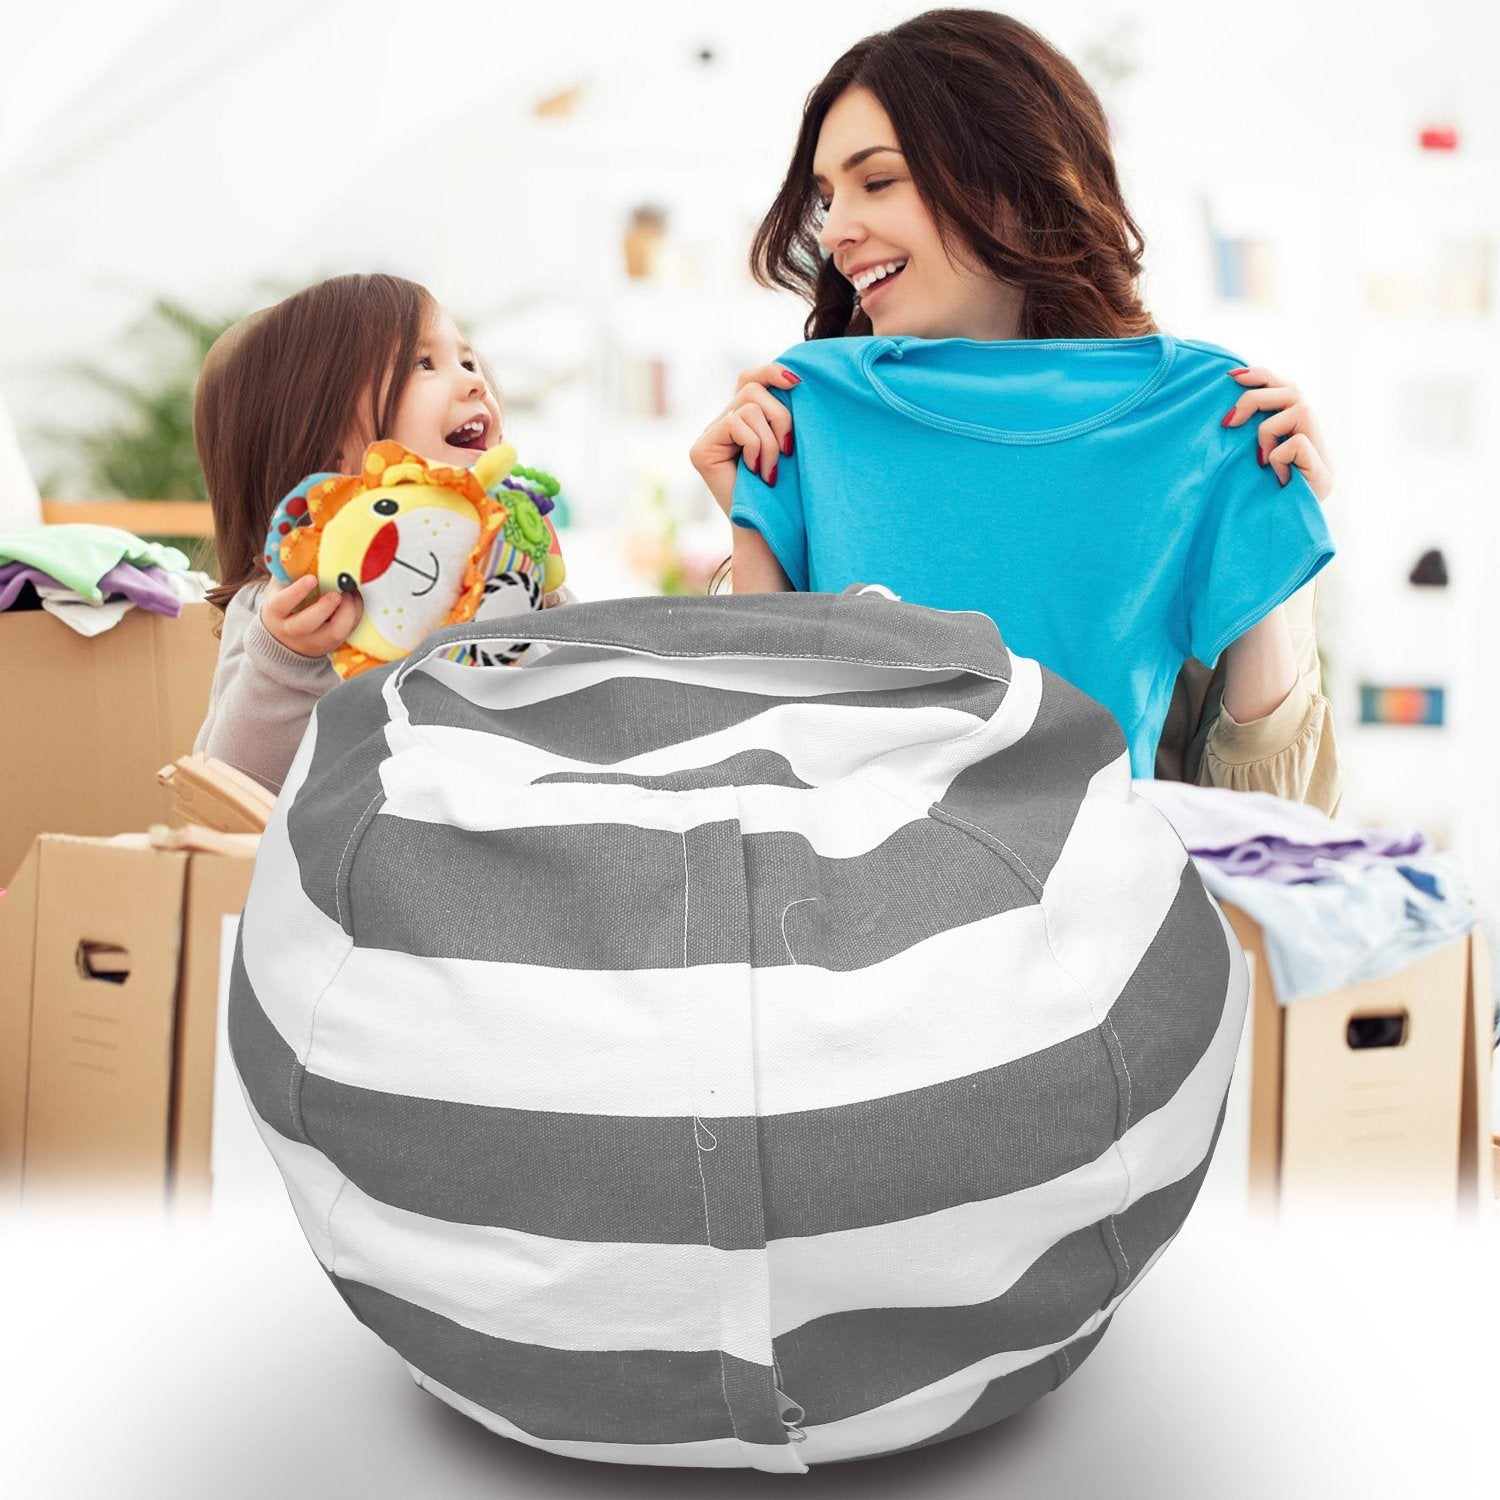 Stuff It Plushy Storage Bean Bag